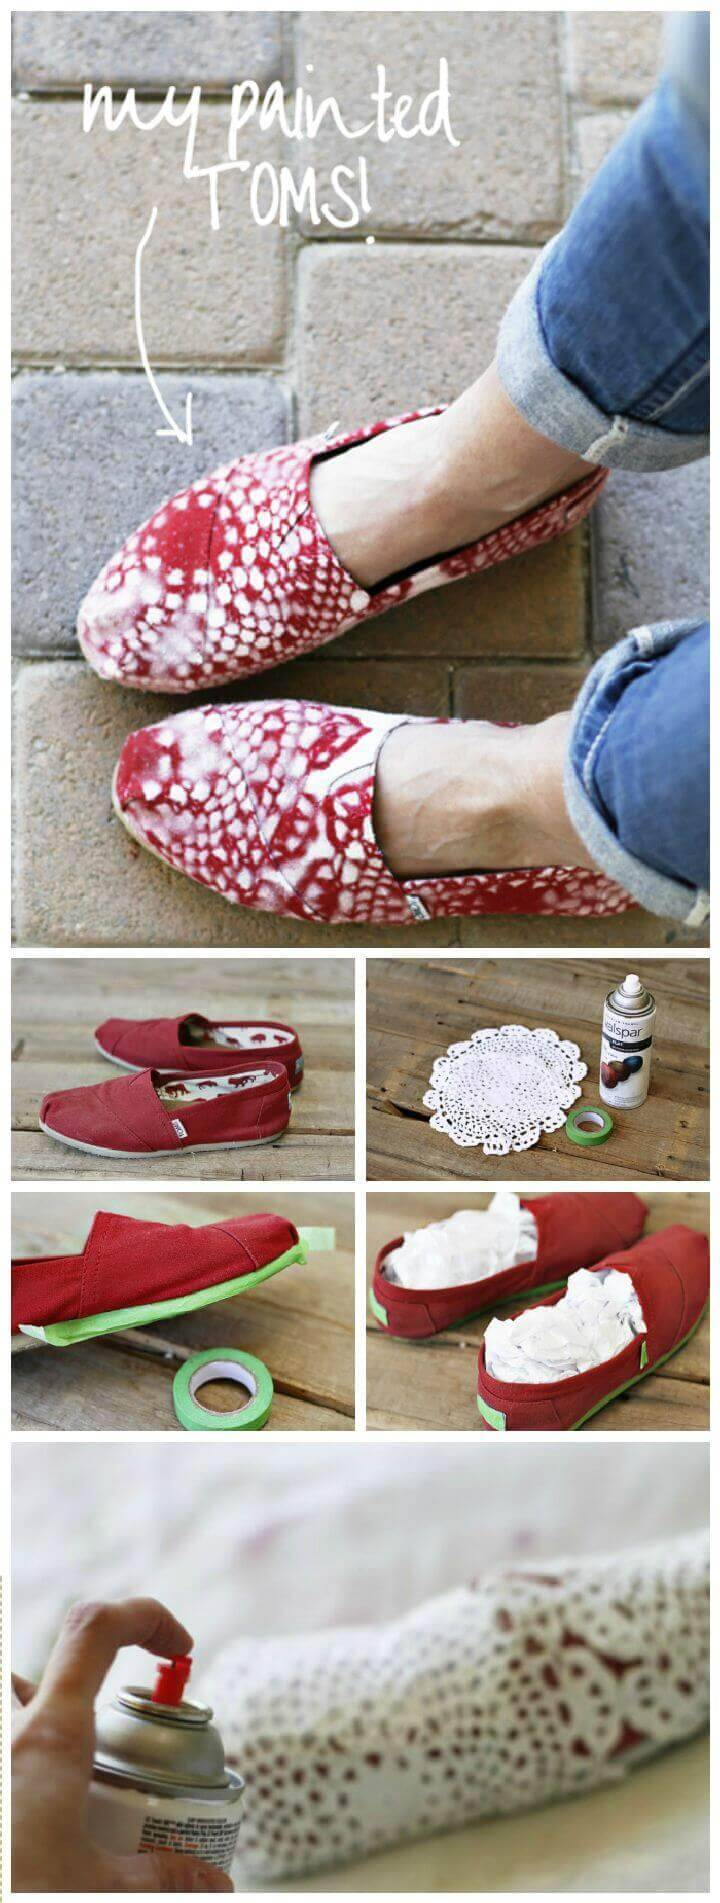 DIY Lace Patterned Toms